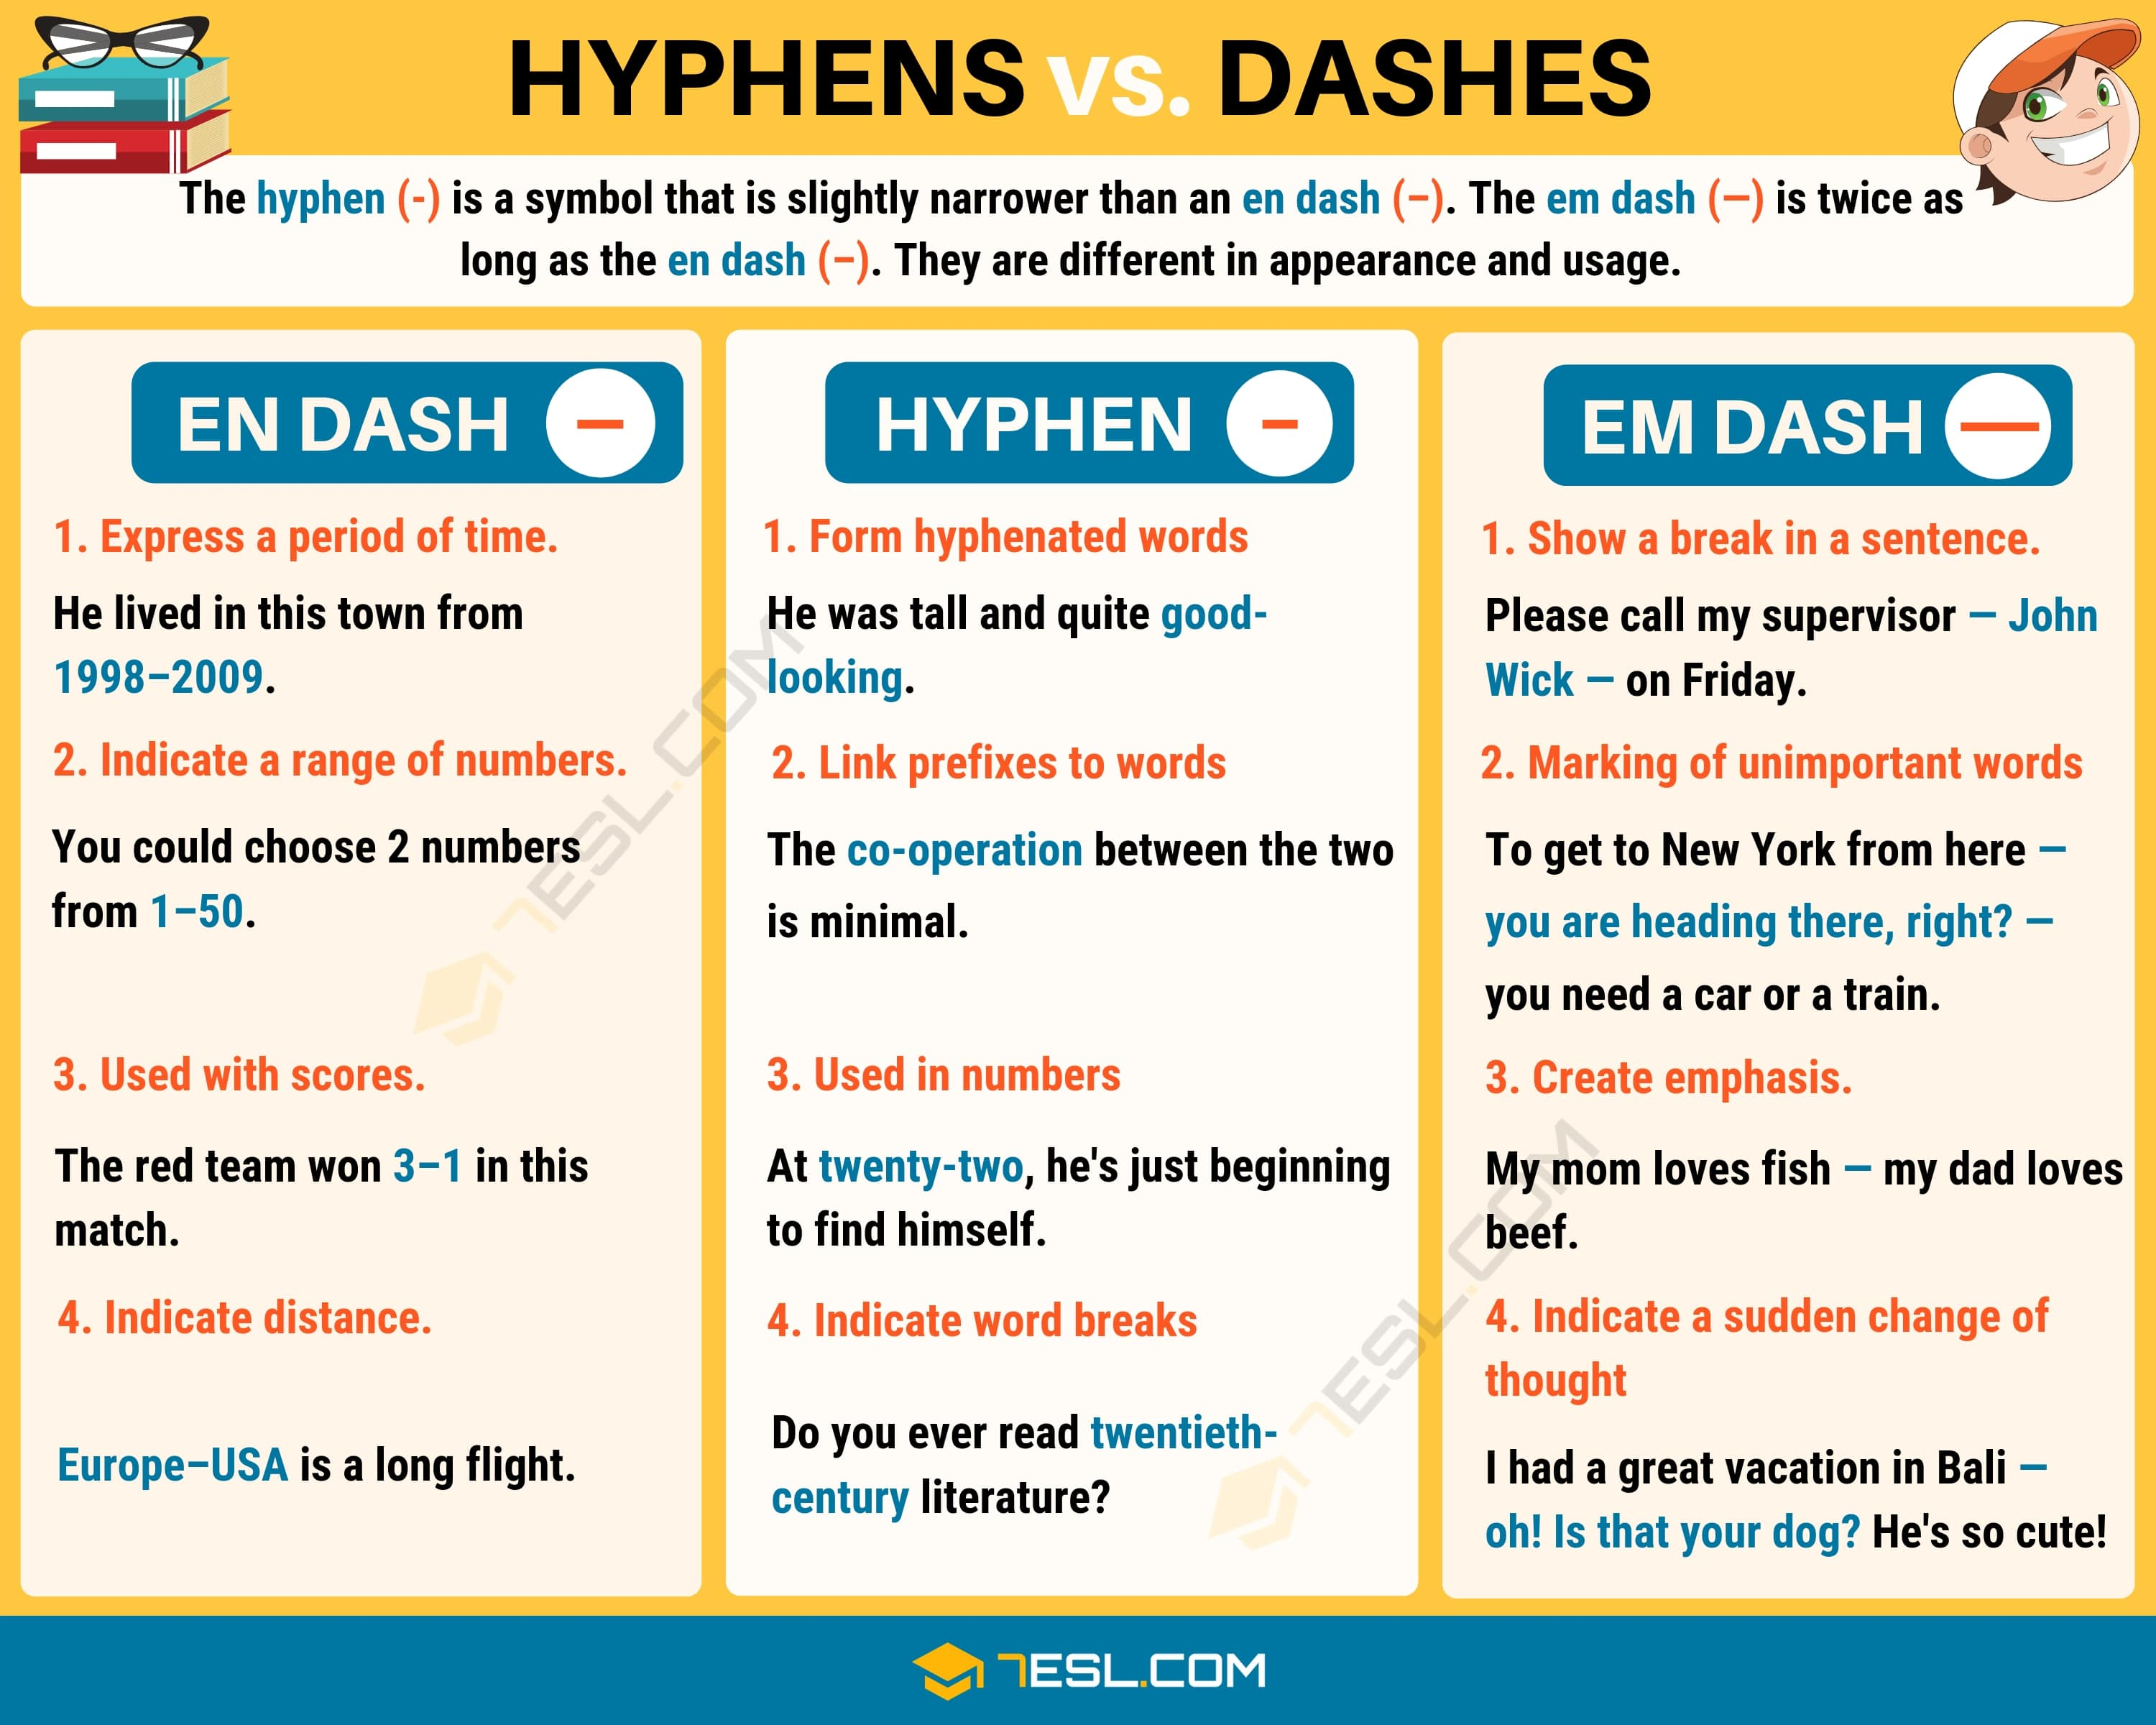 Hyphen (-) When to Use a Hyphen in English